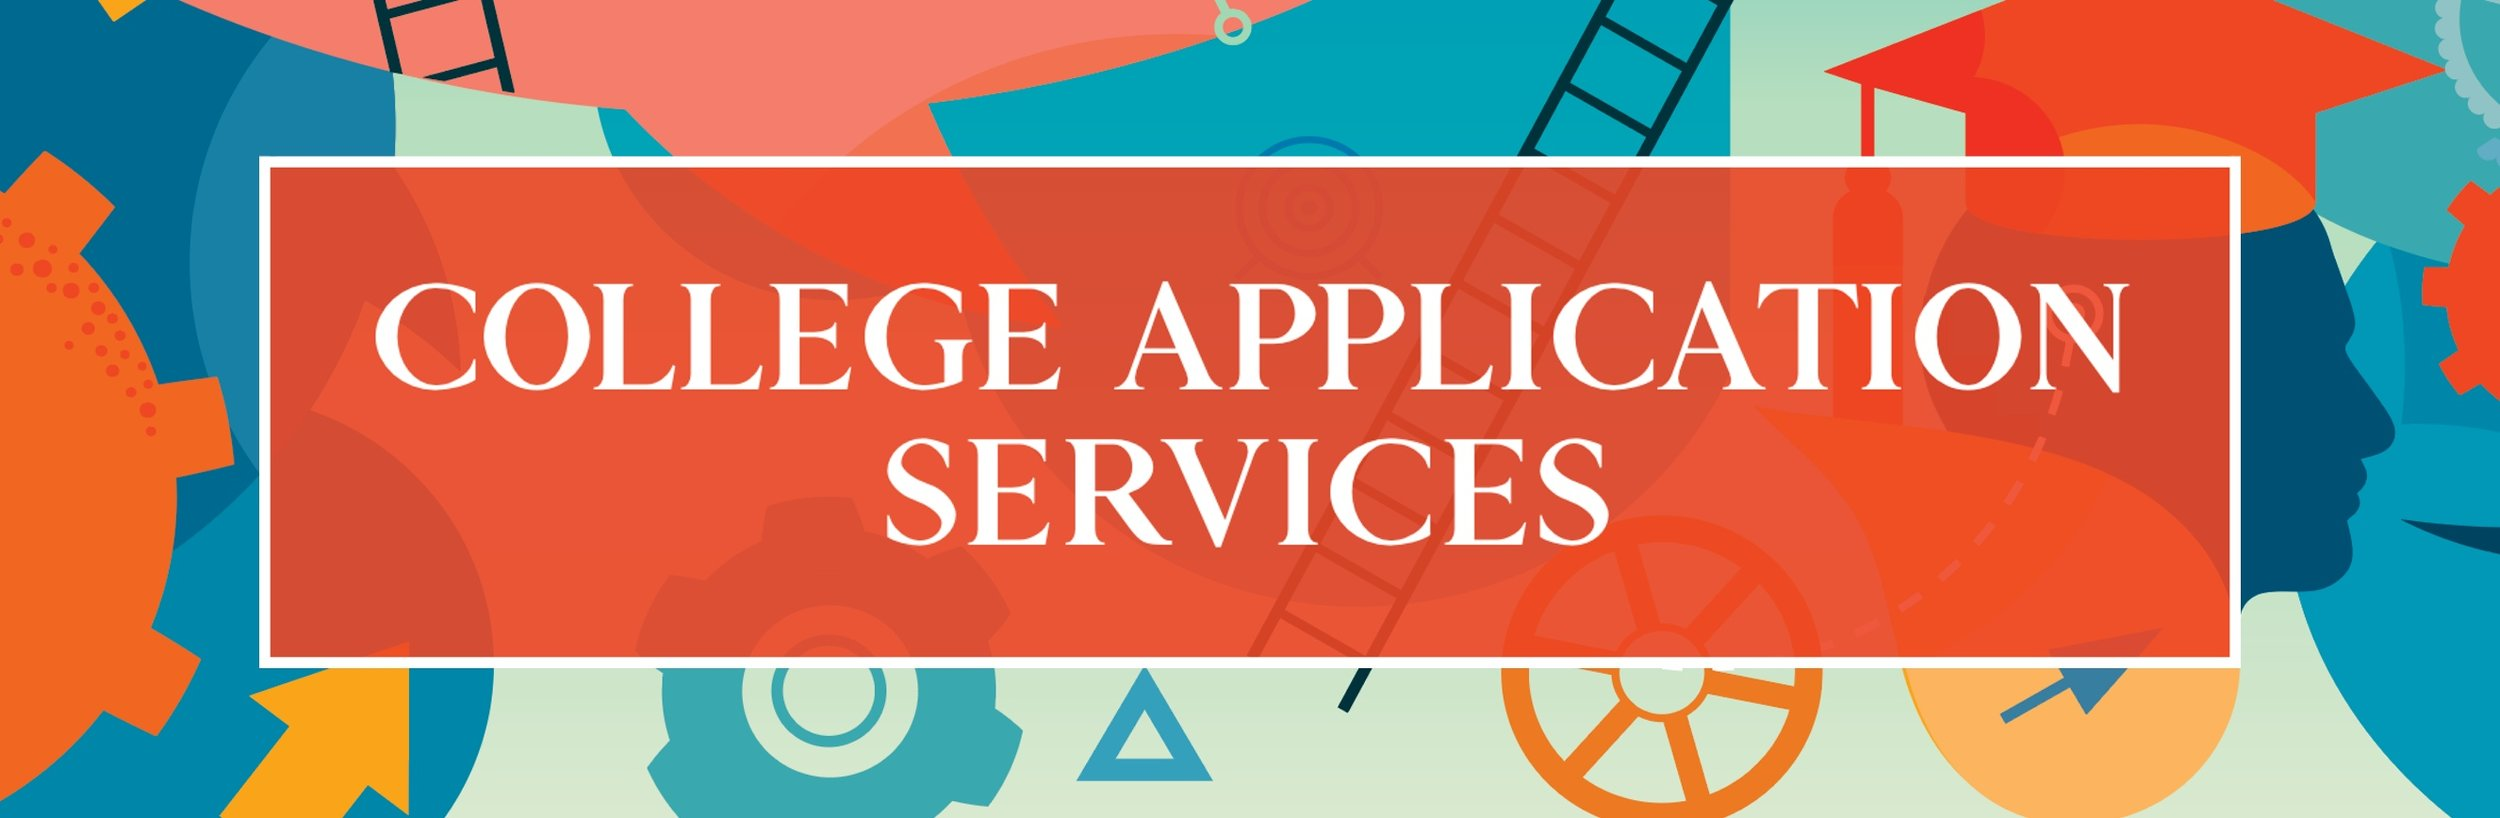 College Application Services Homepage.jpg